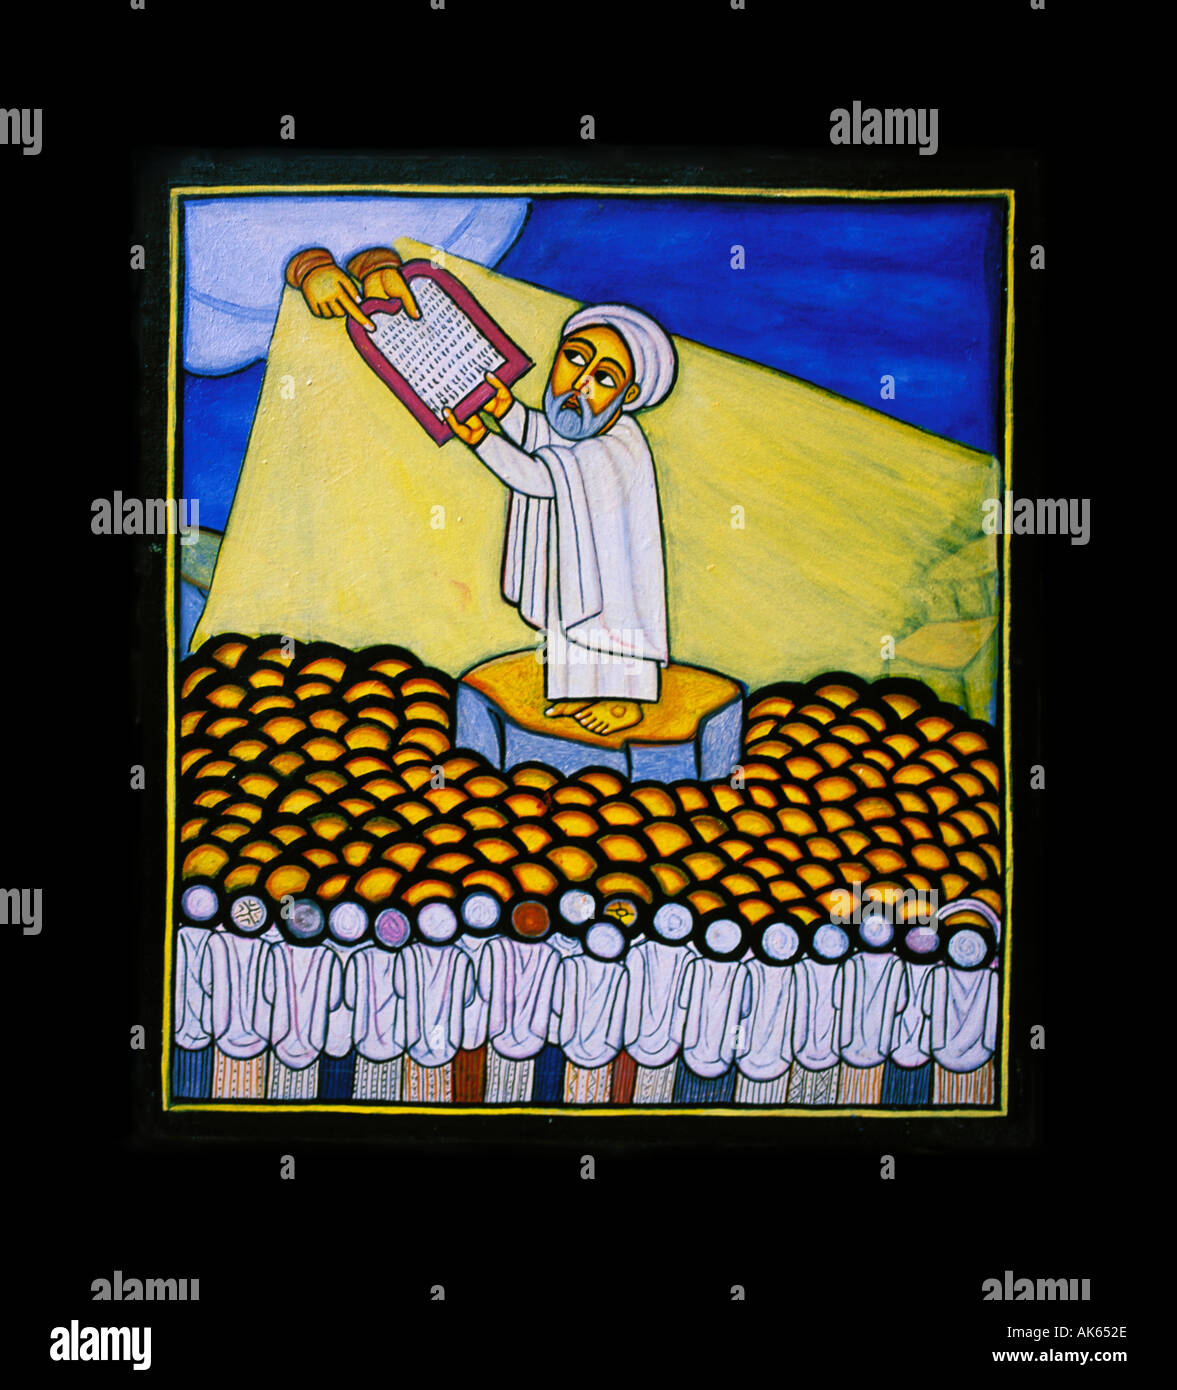 Icon of Moses by Livanus Setatou - Stock Image